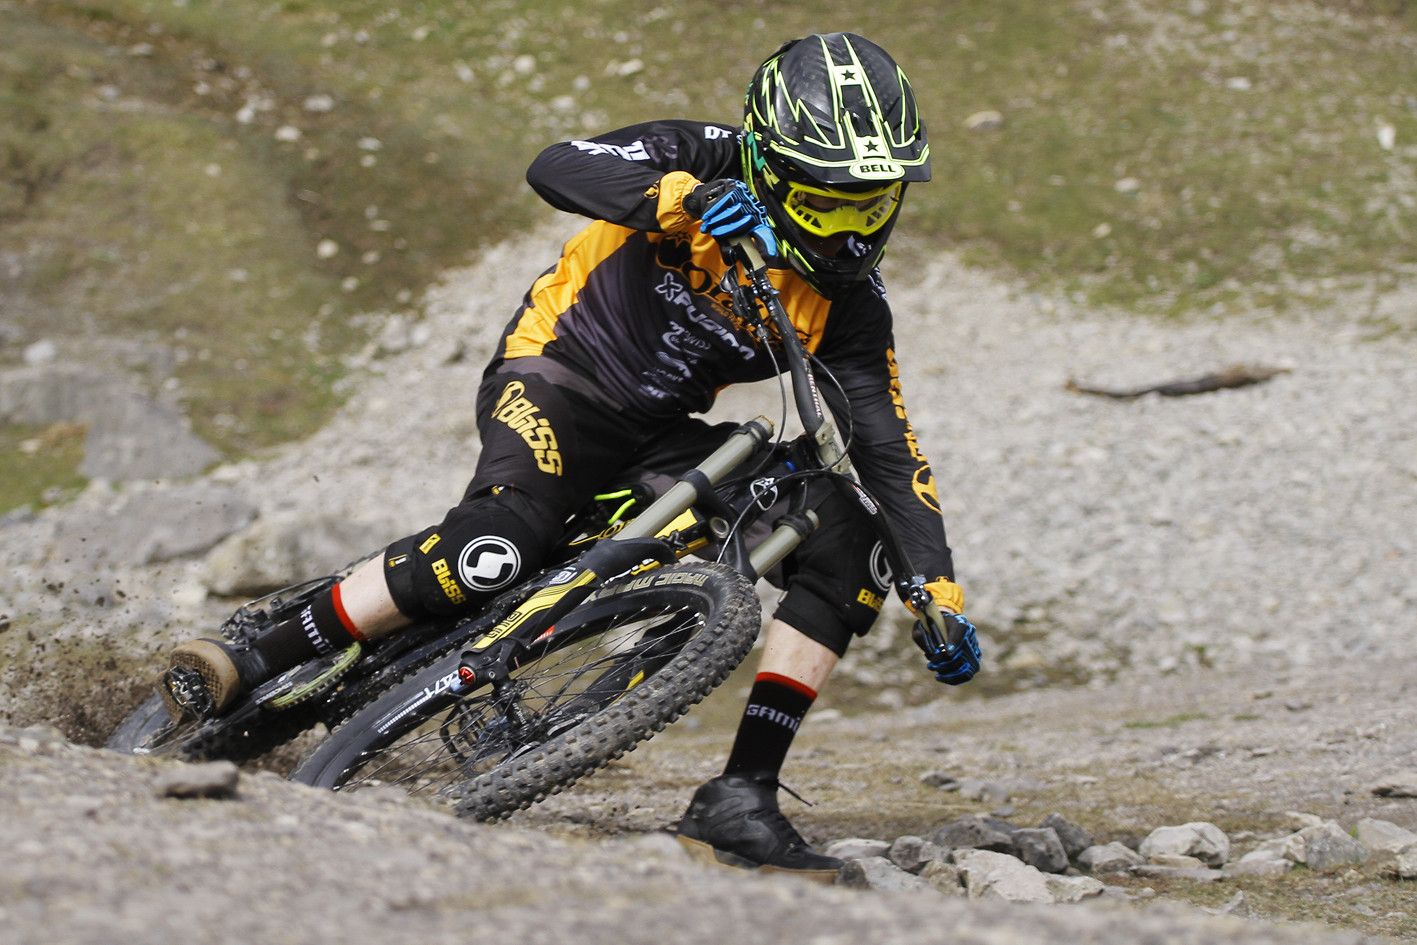 Foot out, flat out - CaldwellVisuals - Mountain Biking Pictures - Vital MTB